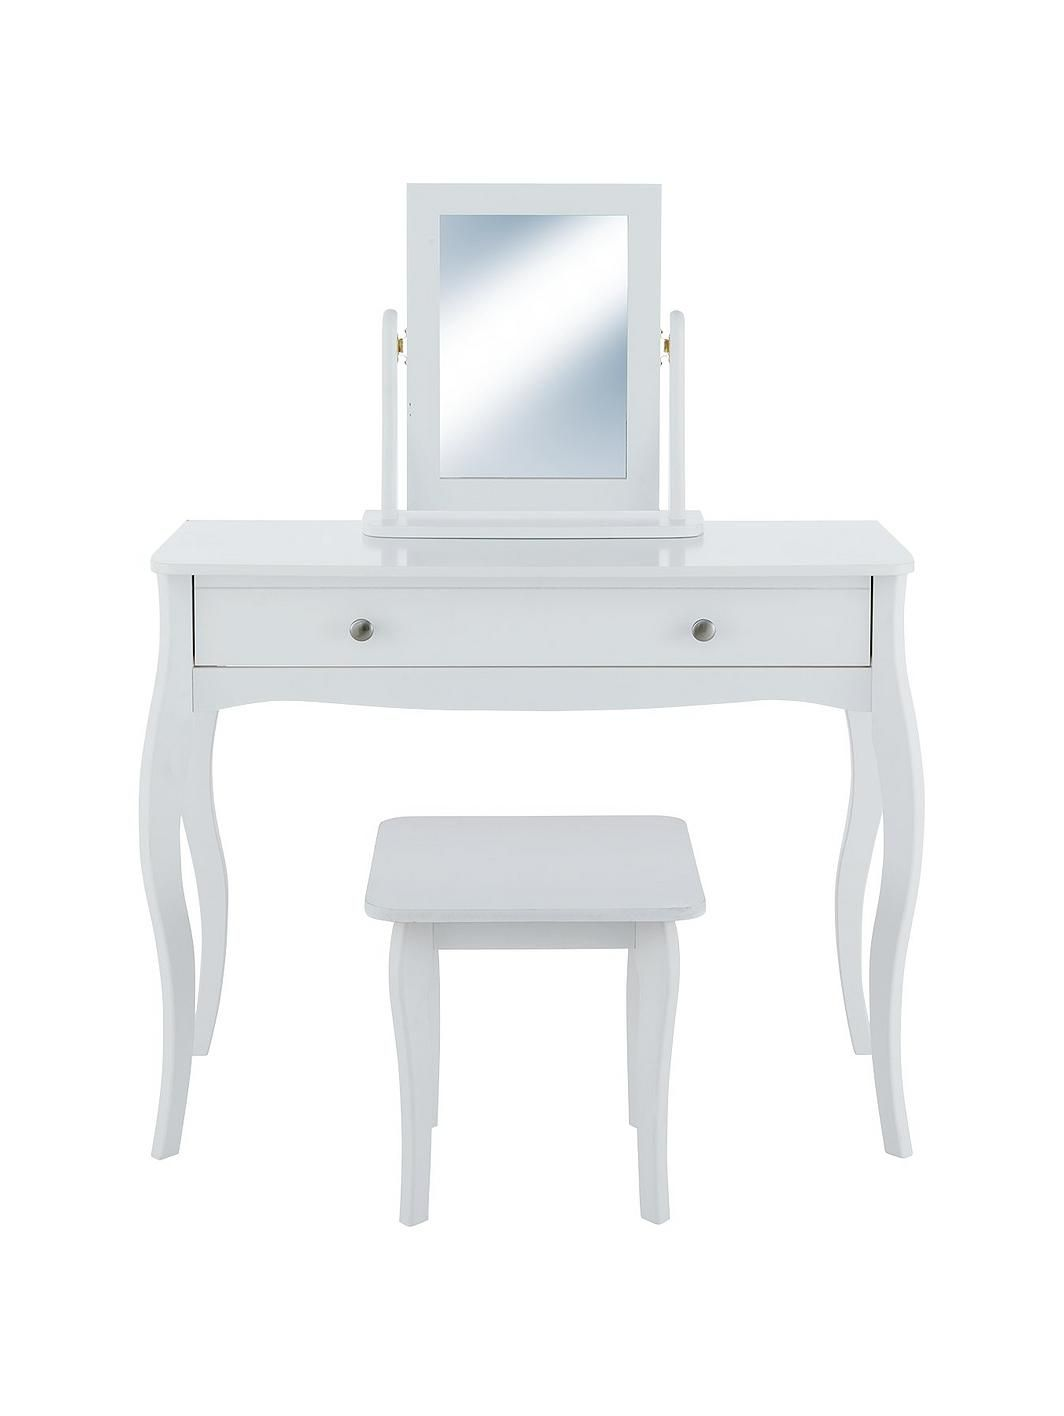 Dressing Table Chairs And Stools: Baroque Dressing Table, Stool And Mirror Set